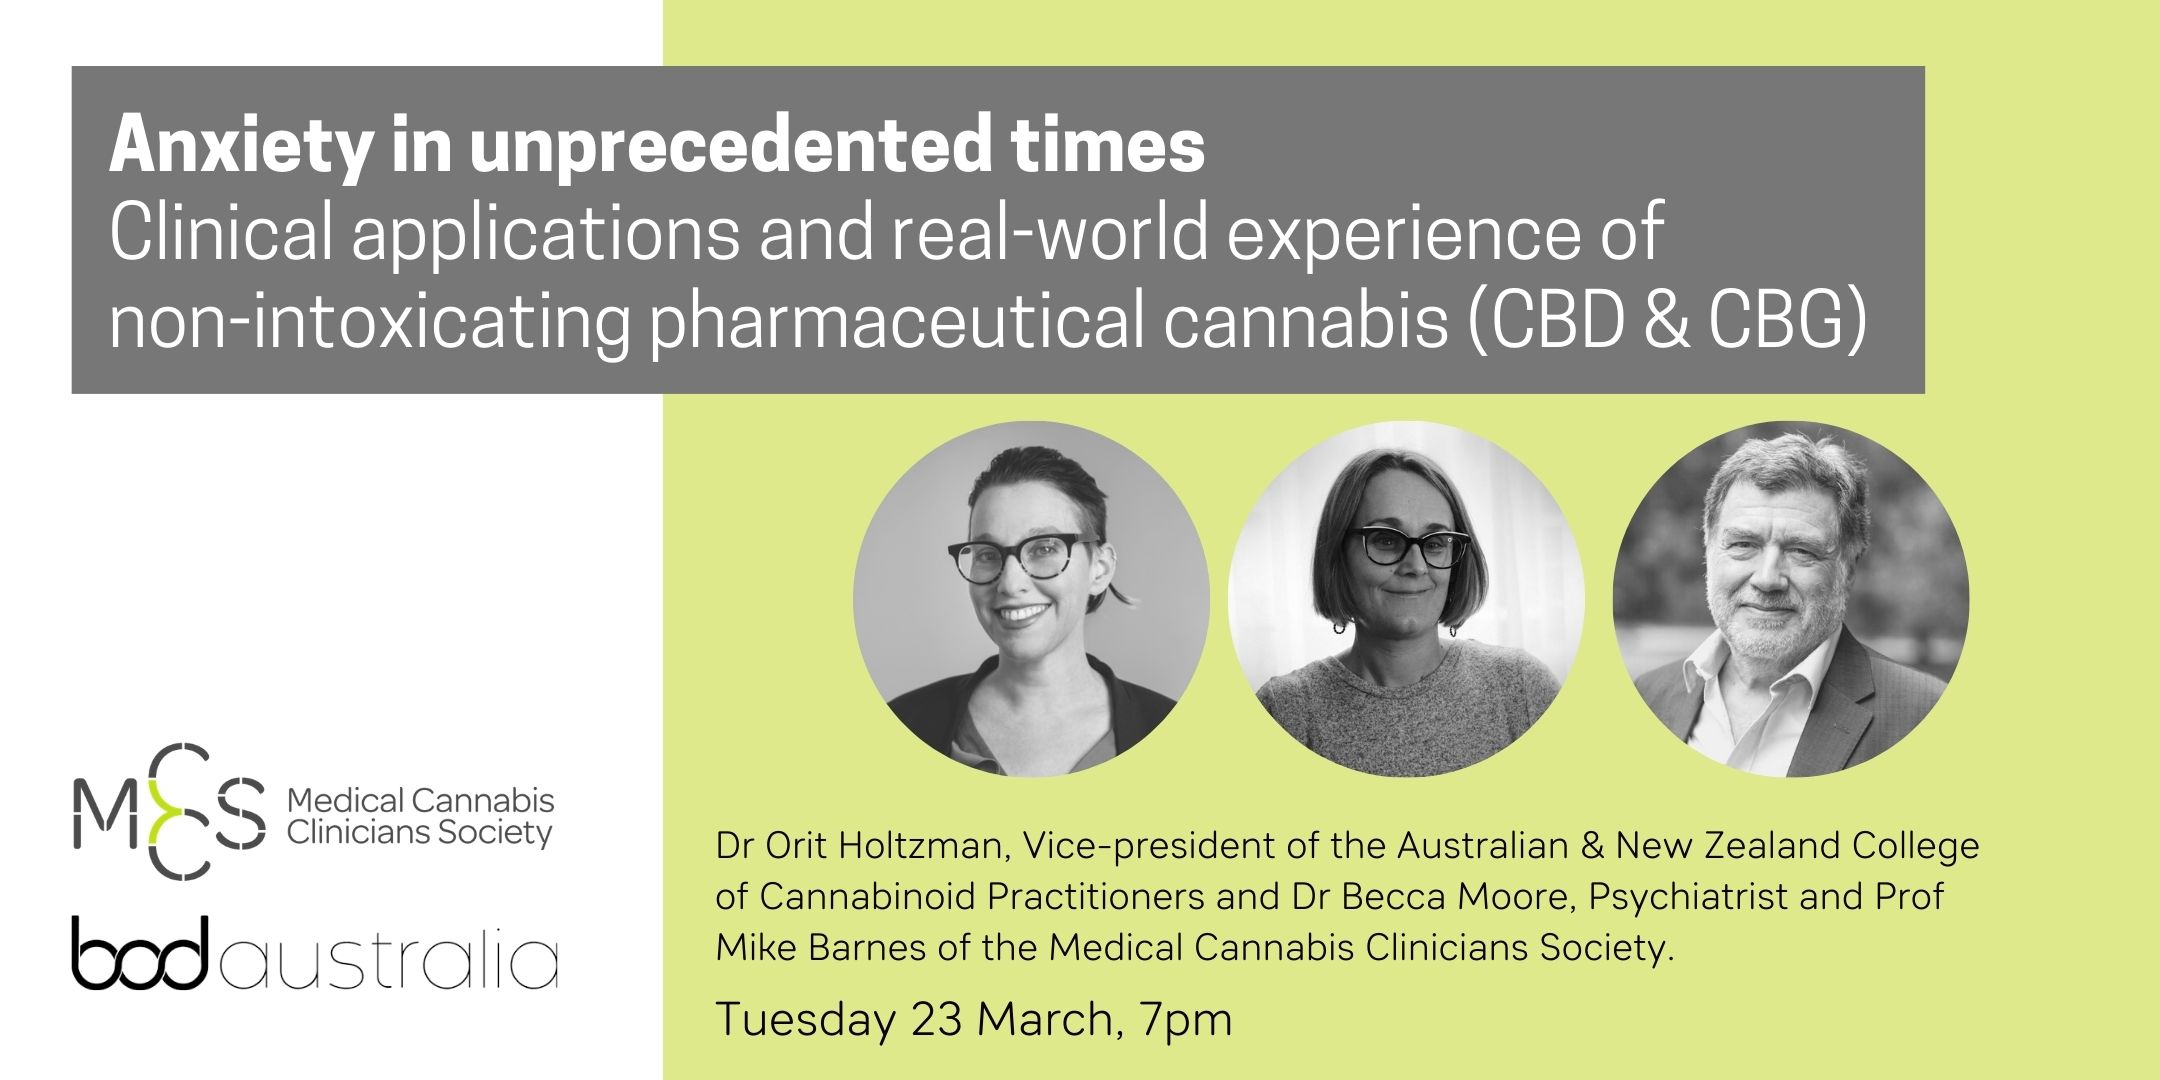 Webinar: Anxiety in unprecedented times – Clinical applications and real-world experience of non-intoxicating pharmaceutical cannabis (CBD & CBG)